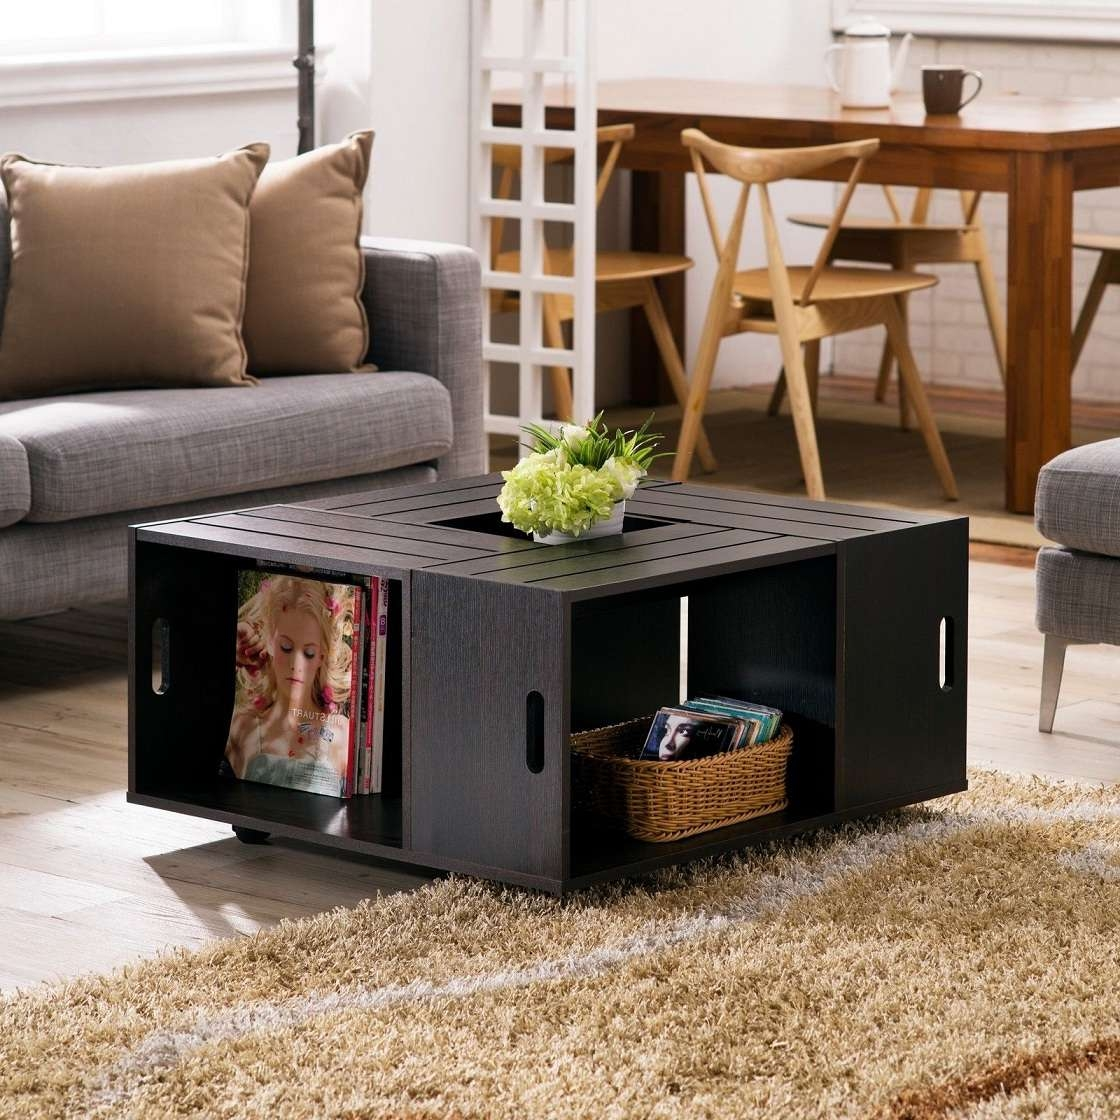 Most Recent Square Coffee Table With Storage Drawers Pertaining To Black Square Coffee Table With Drawers • Coffee Table Ideas (View 14 of 20)